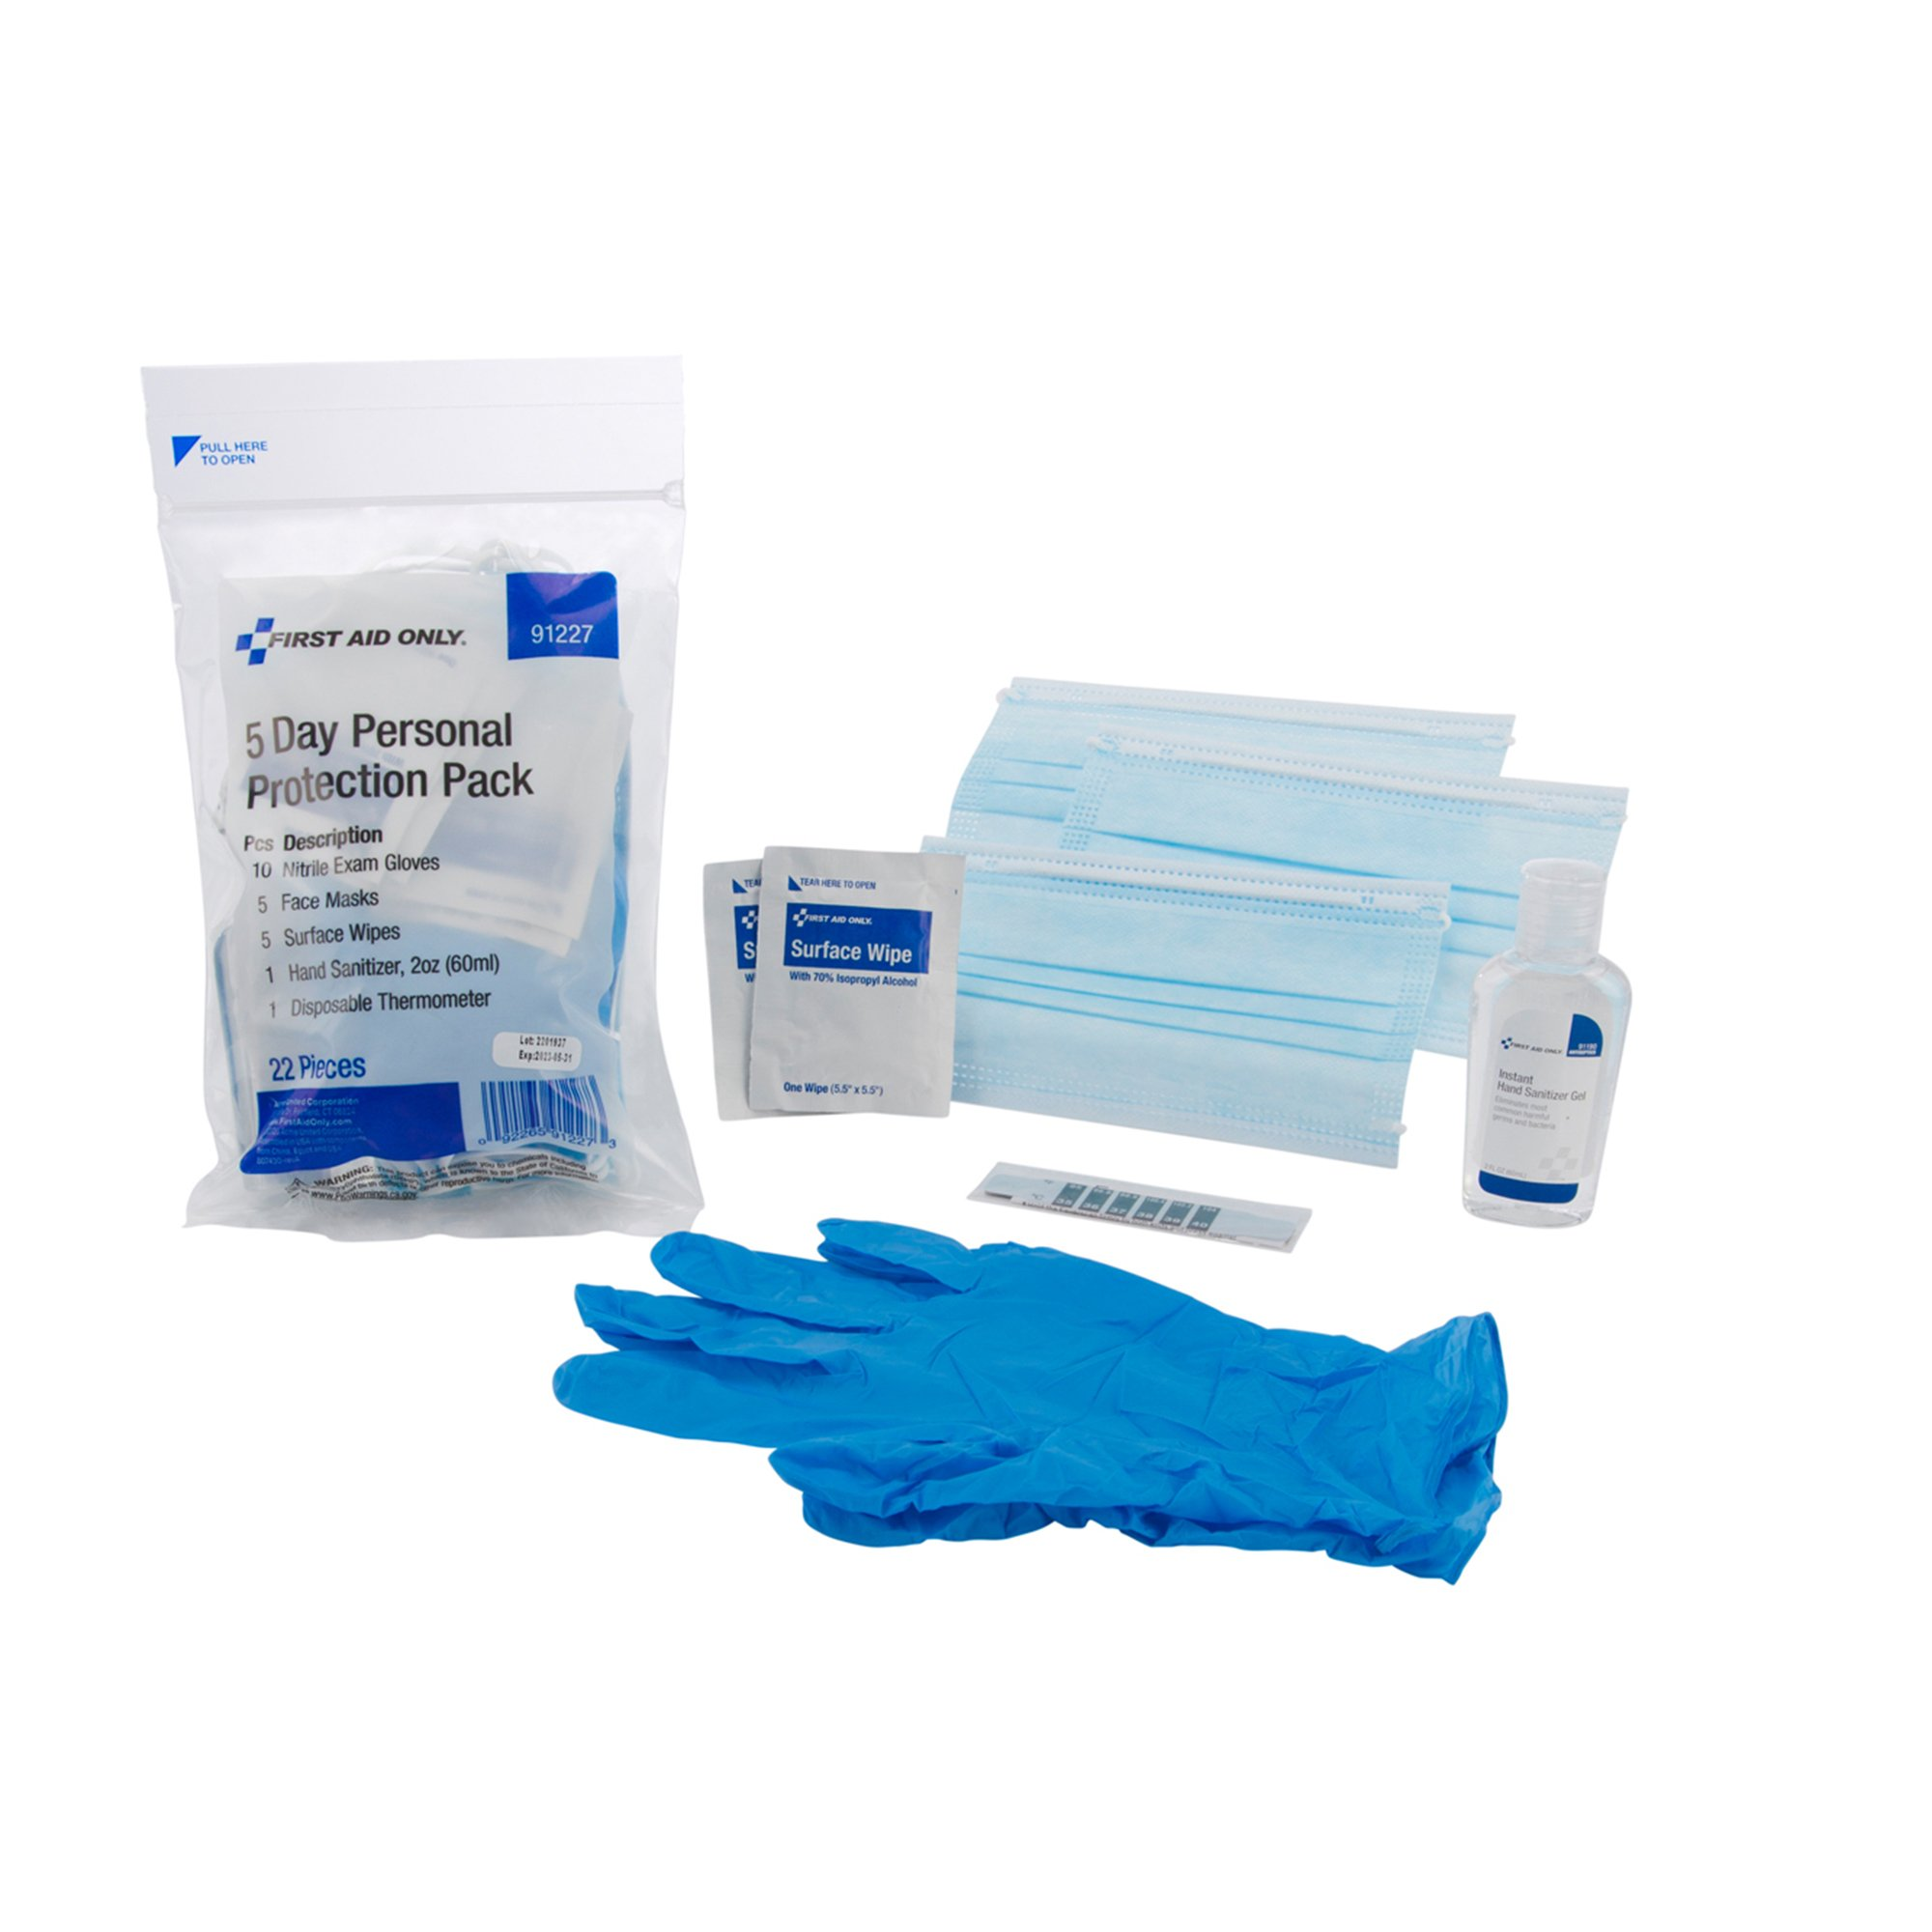 First Aid Only 5 Day Personal Protection Pack, 91227, 1 Kit